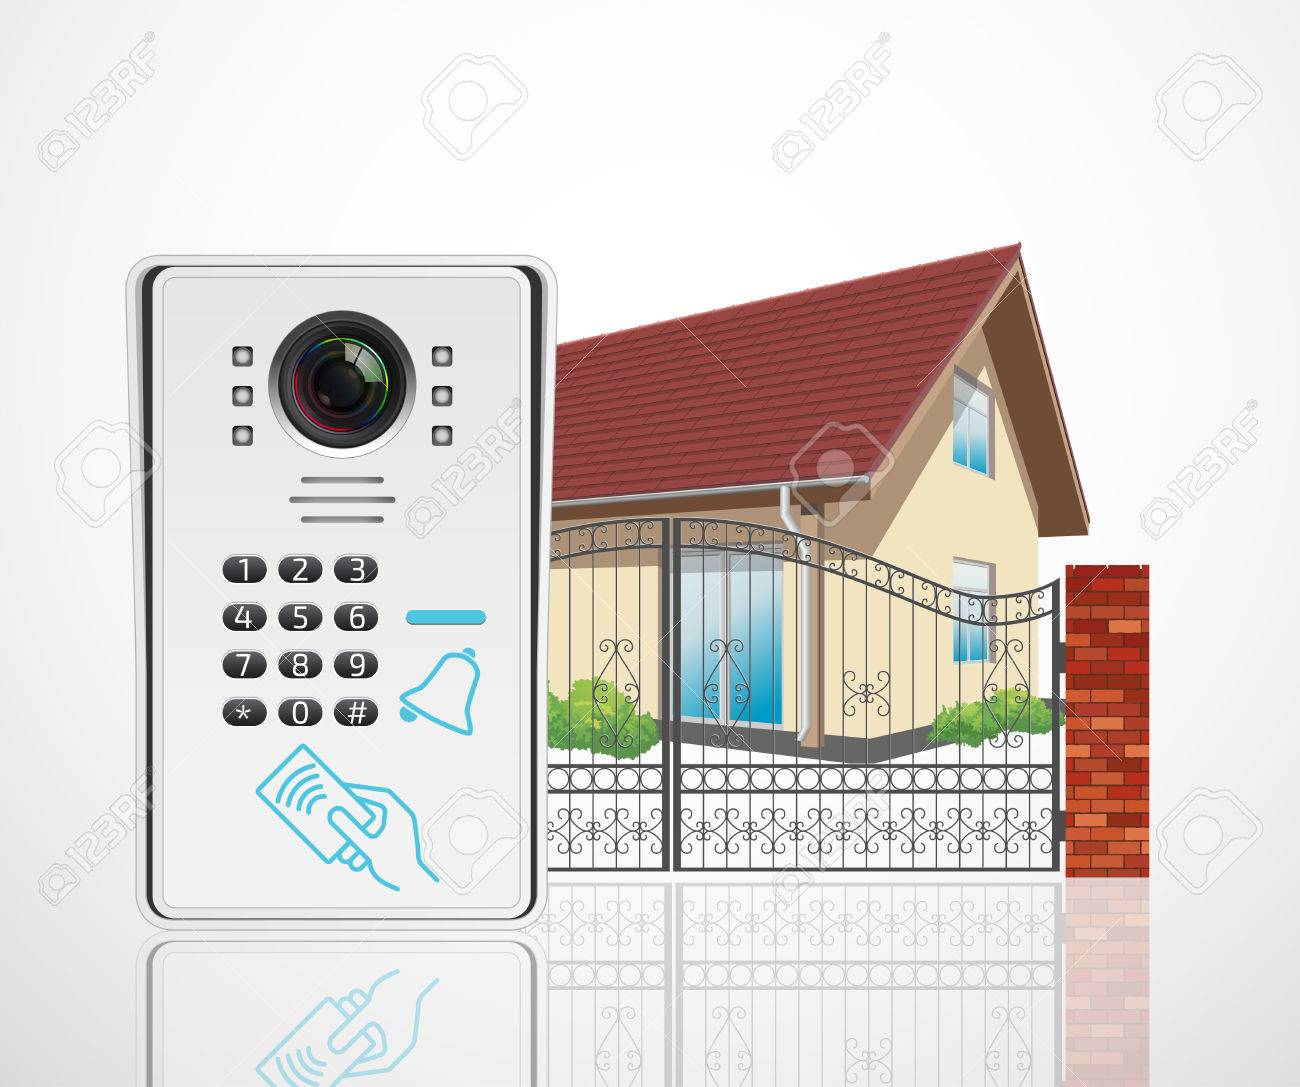 Home access control system - Video door phone - 55519489